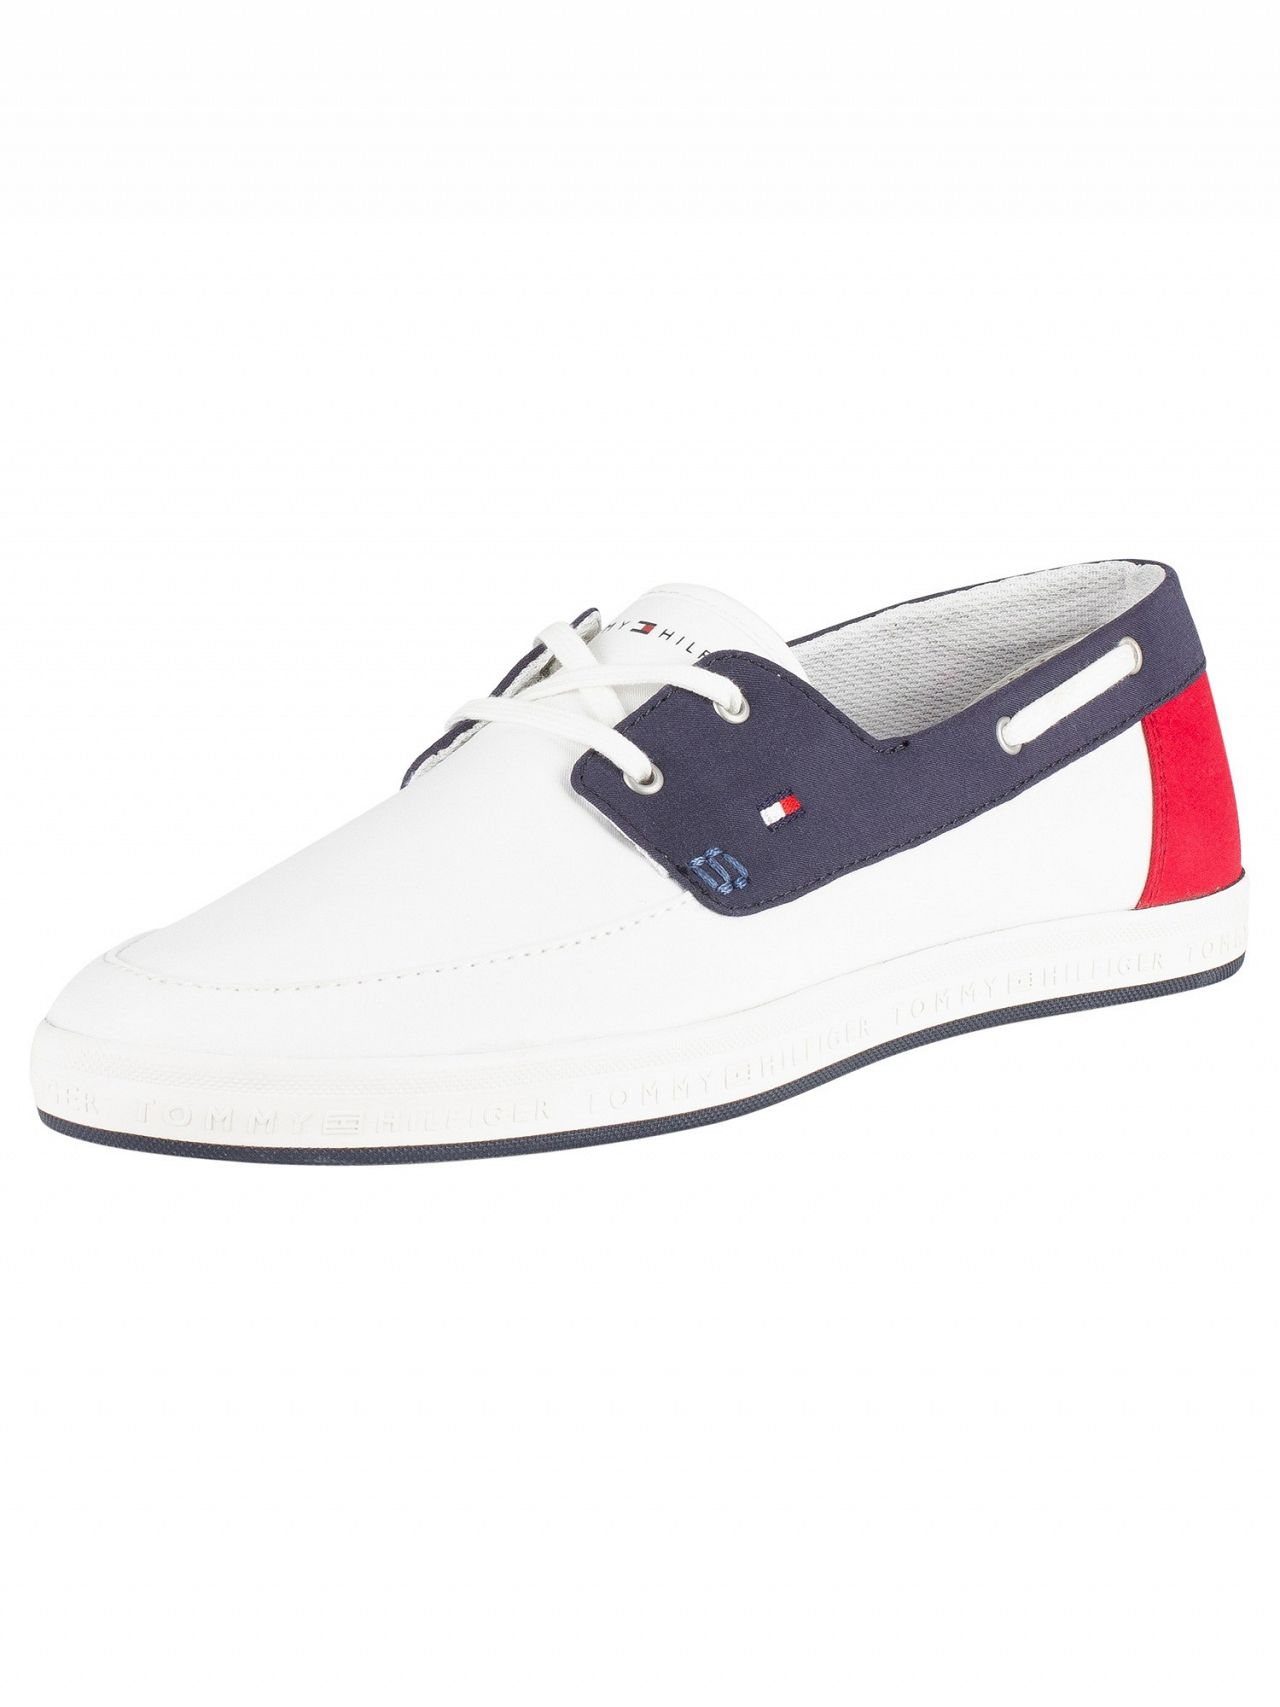 competitive price 67add 089b6 Tommy Hilfiger White Seasonal Core Boat Shoes